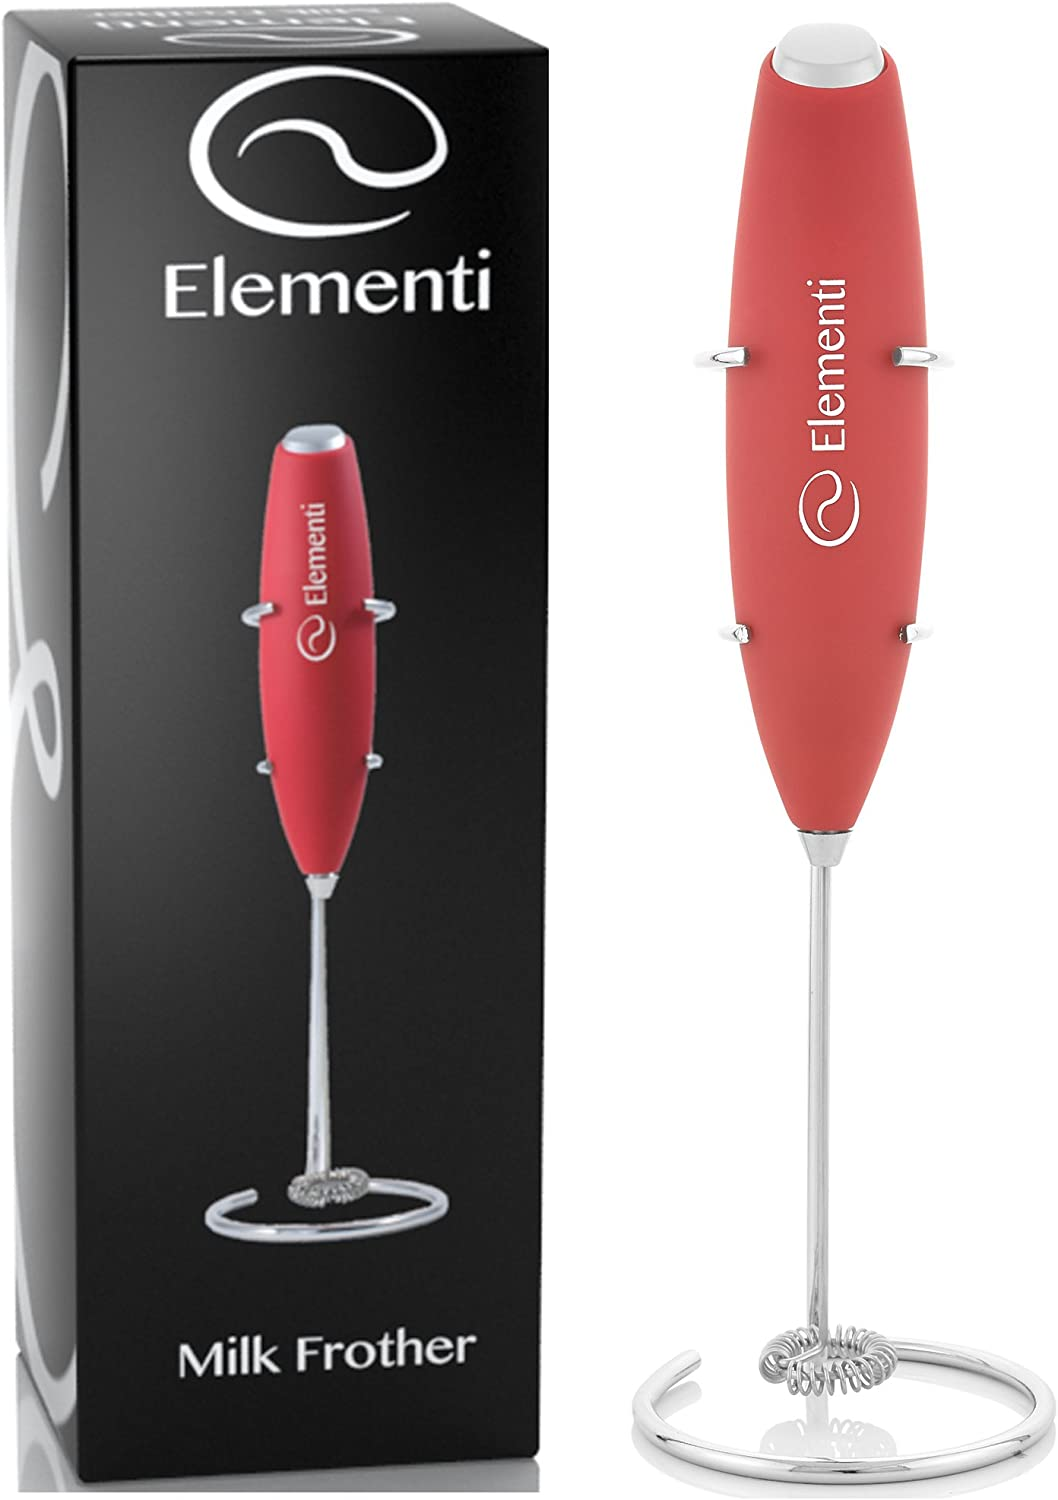 Elementi Milk Frother with Stand Image